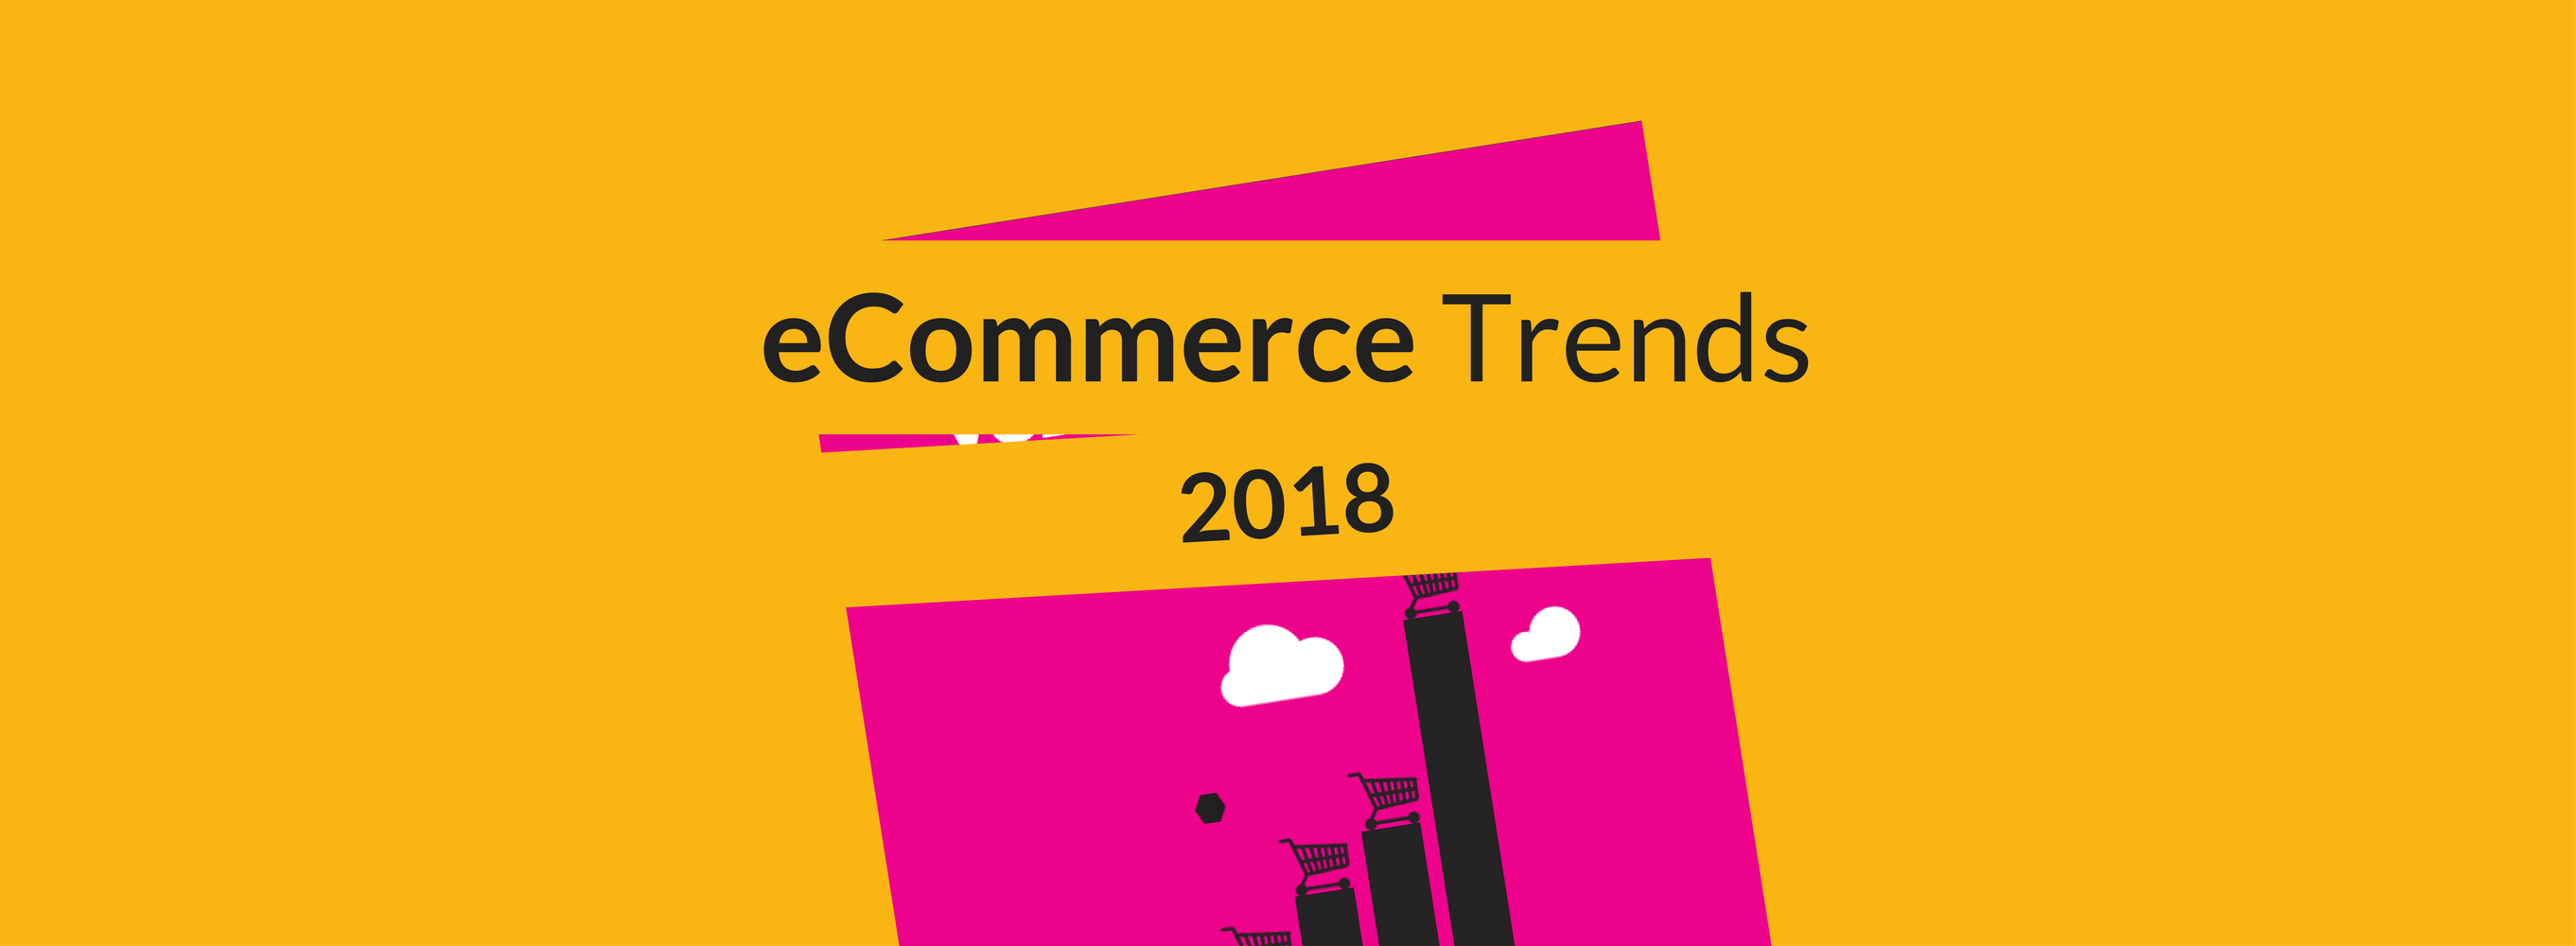 ecommerce-trends-2018-blog-header-2